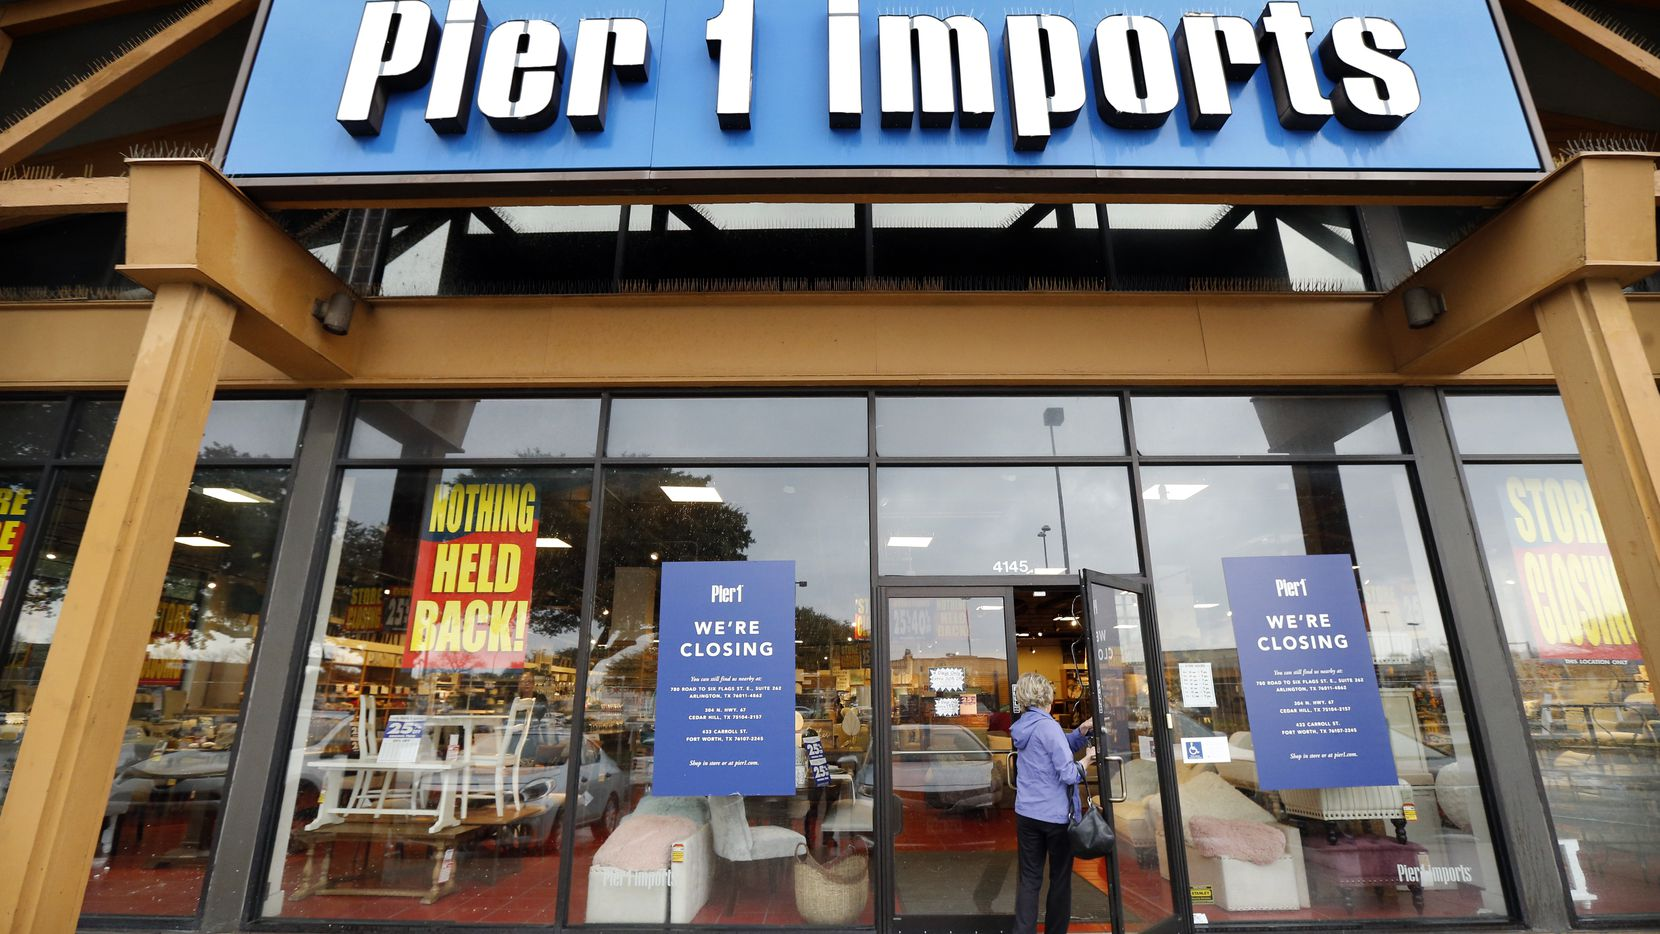 Fort Worth-based Pier 1 Imports plans to liquidate its operations this summer. This store on the Dallas North Tollway just north of Galleria Dallas is its biggest among it 900 stores.